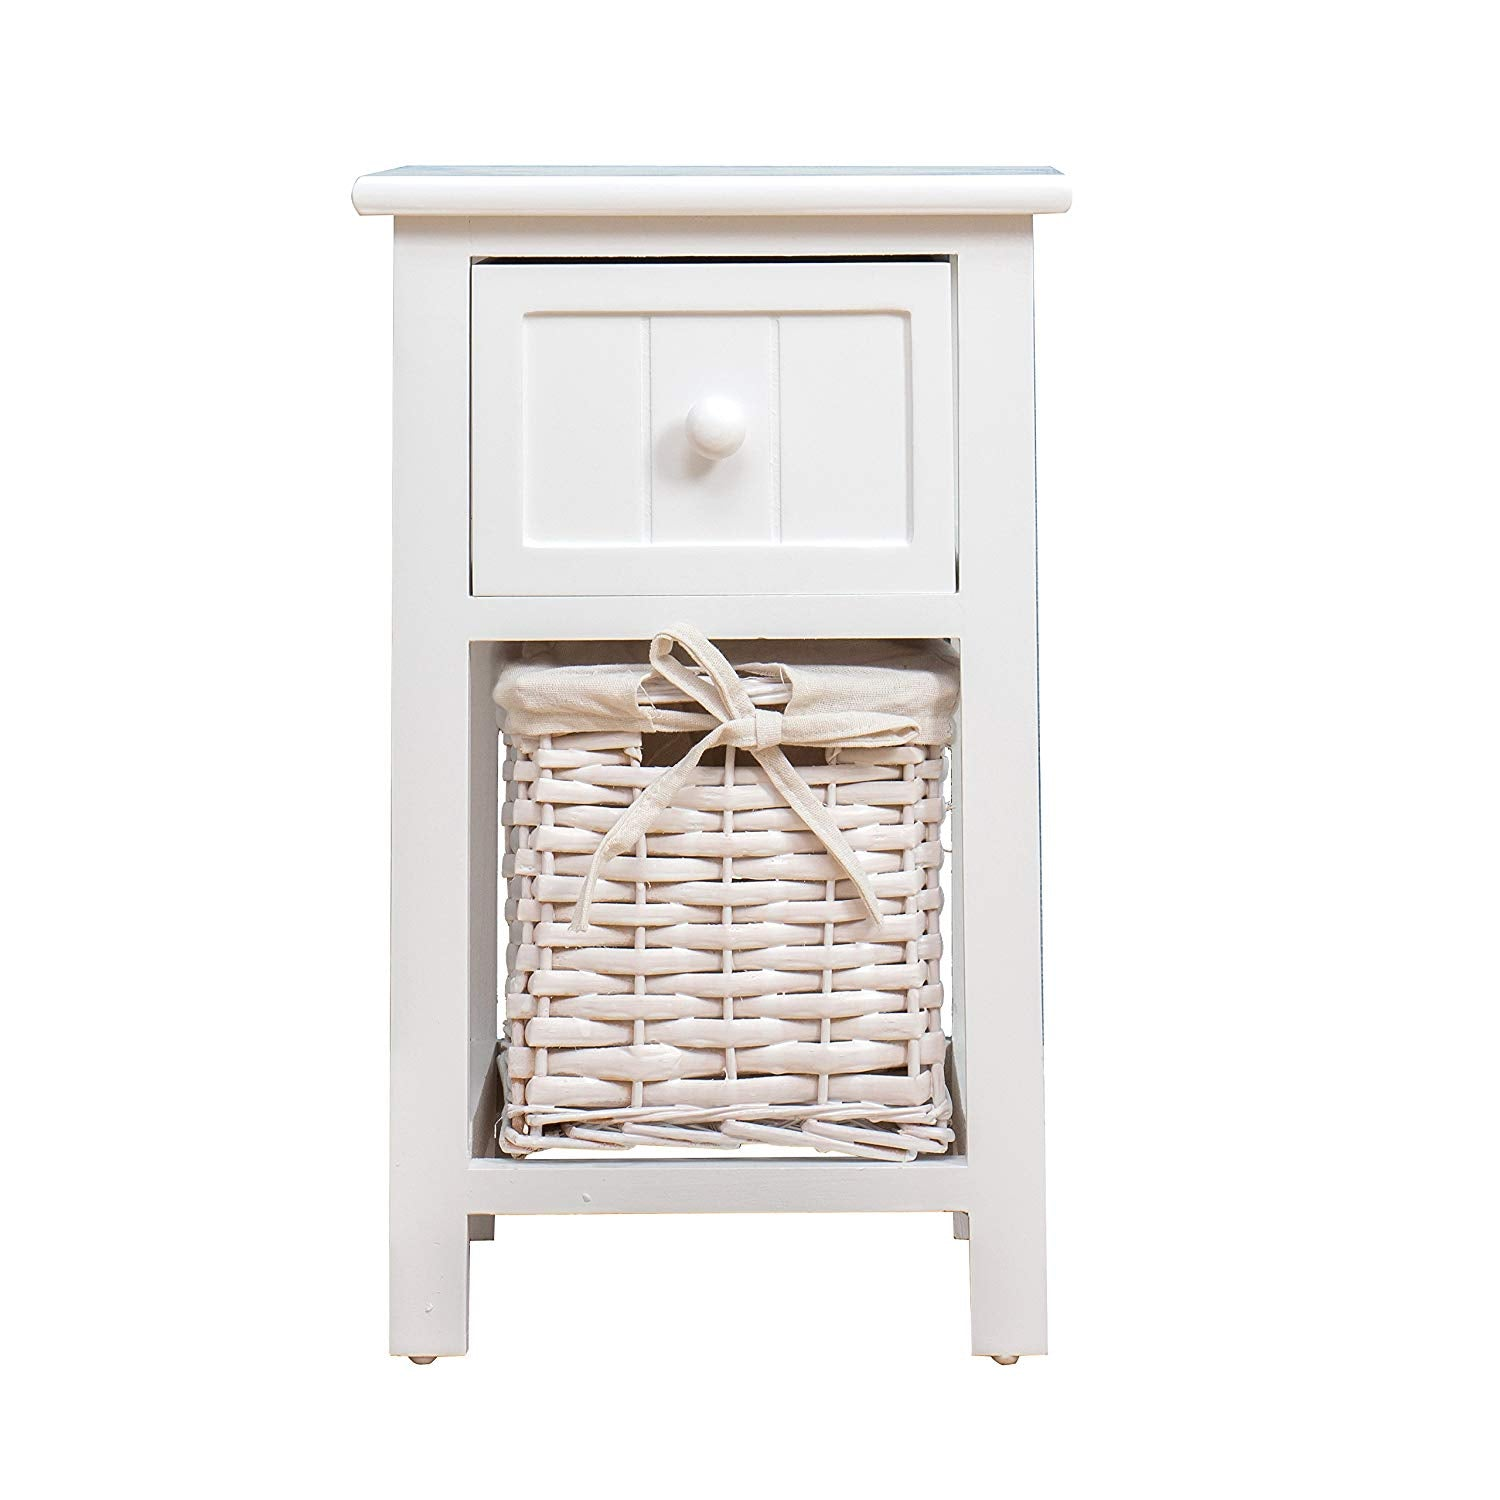 White Wood Bedside Table With 1 Drawer 1 Wicker Basket Storage Shop Designer Home Furnishings